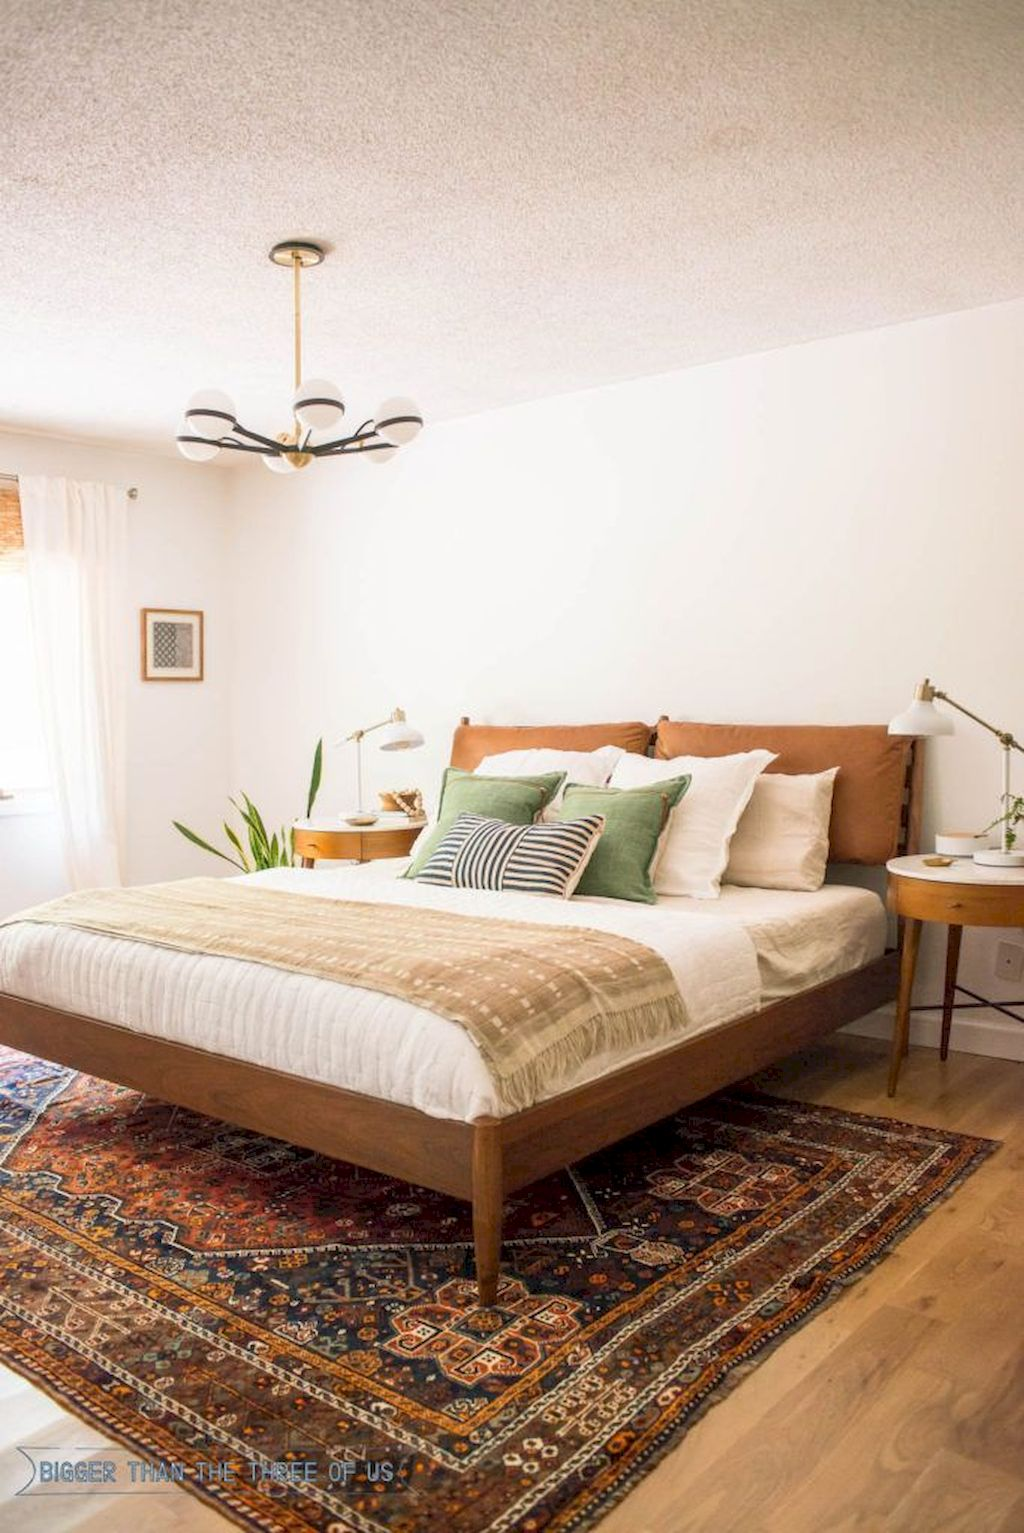 Affordable Bedroom Design With Comfortable Beds and Furniture Part 13